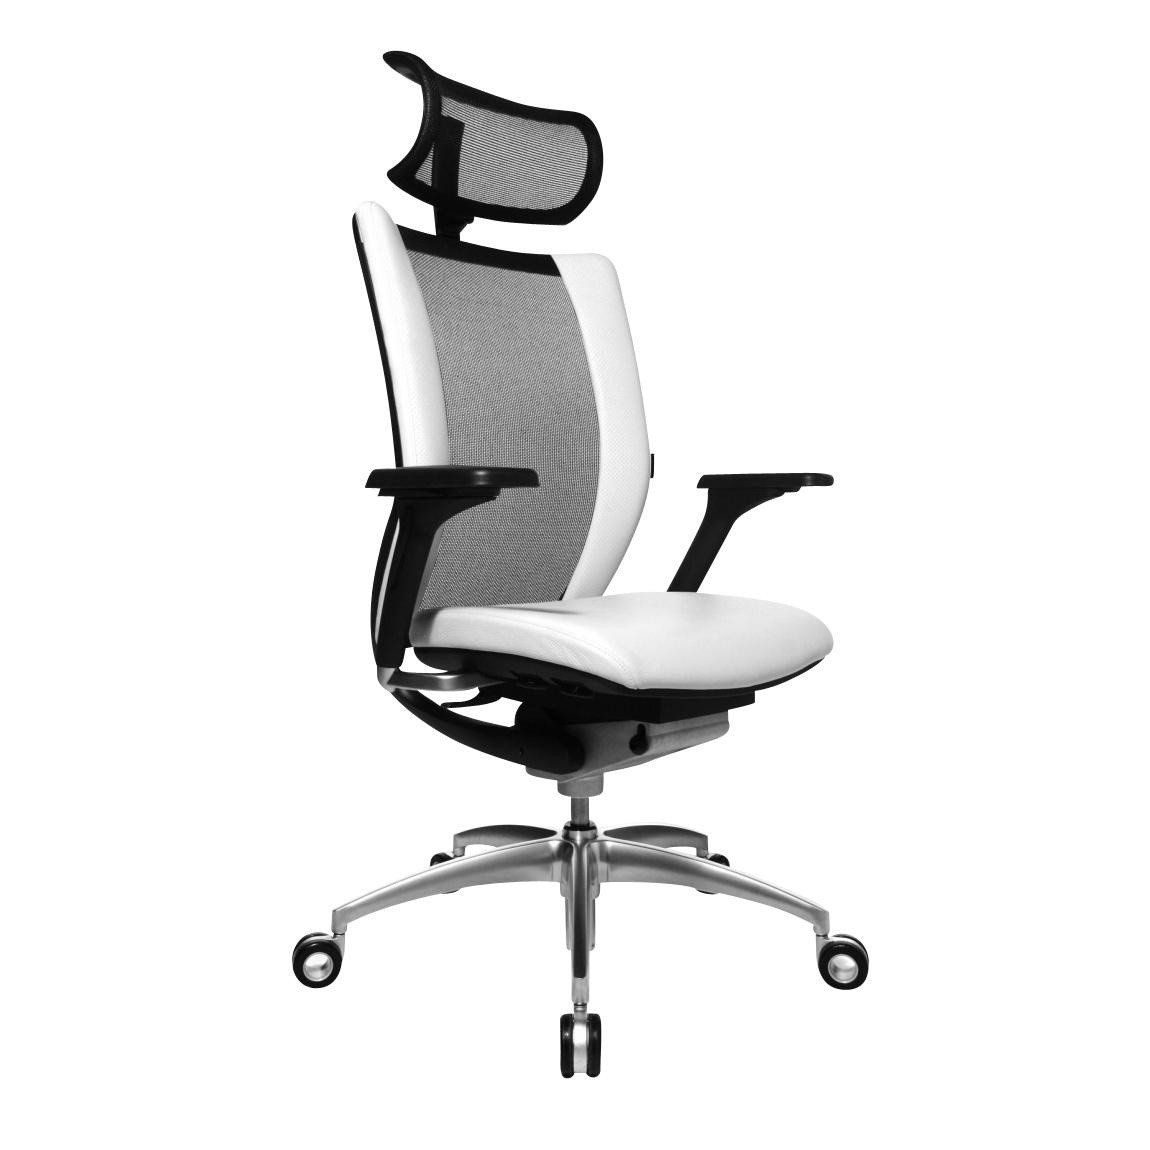 Limited Office Chair For Hard Floors